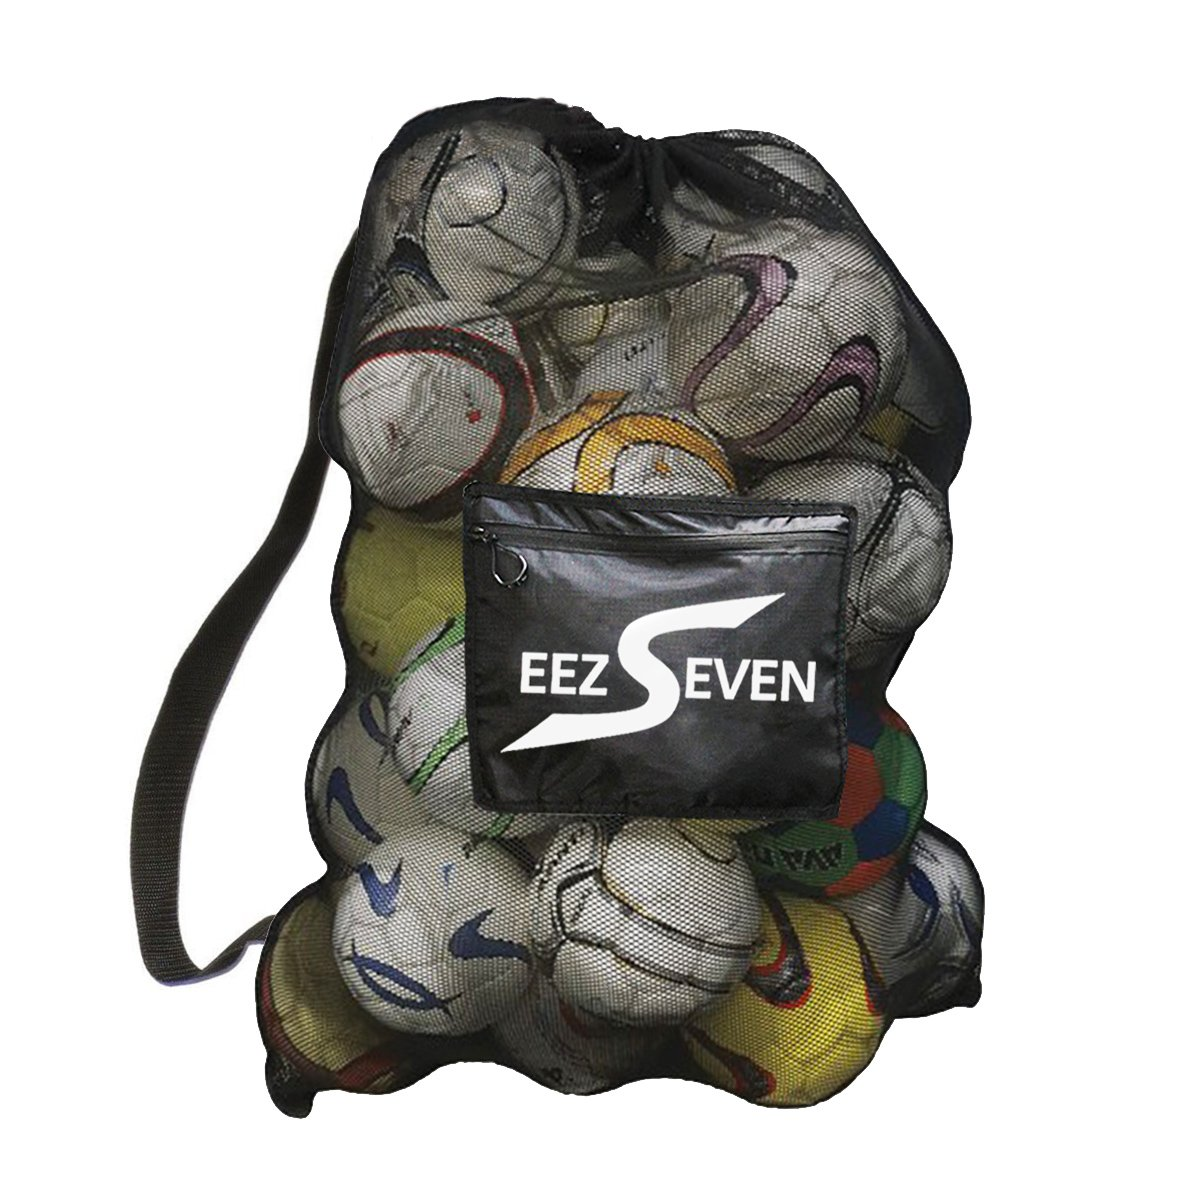 Heavy Duty Extra Large Ball Mesh Bag Soccer Ball Bag Equipment Bag For  Sports Beach and 6ed98bfb44f38